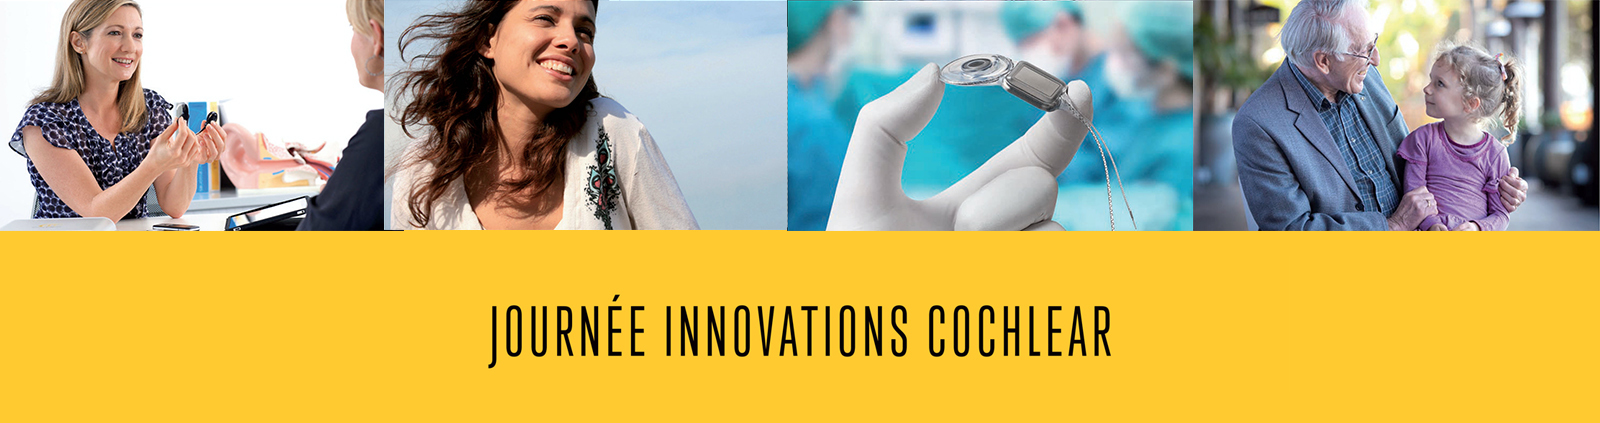 Journee innovations cochlear